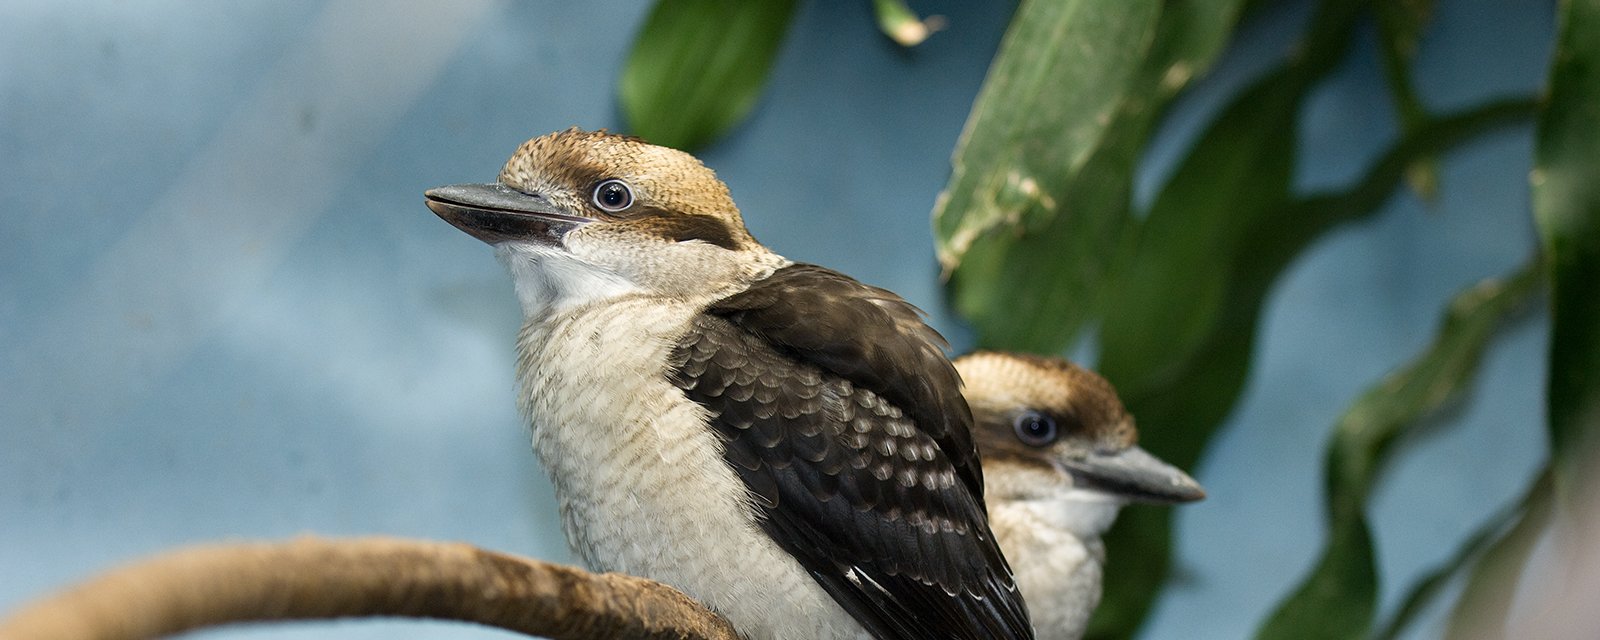 Laughing kookaburra in exhibit